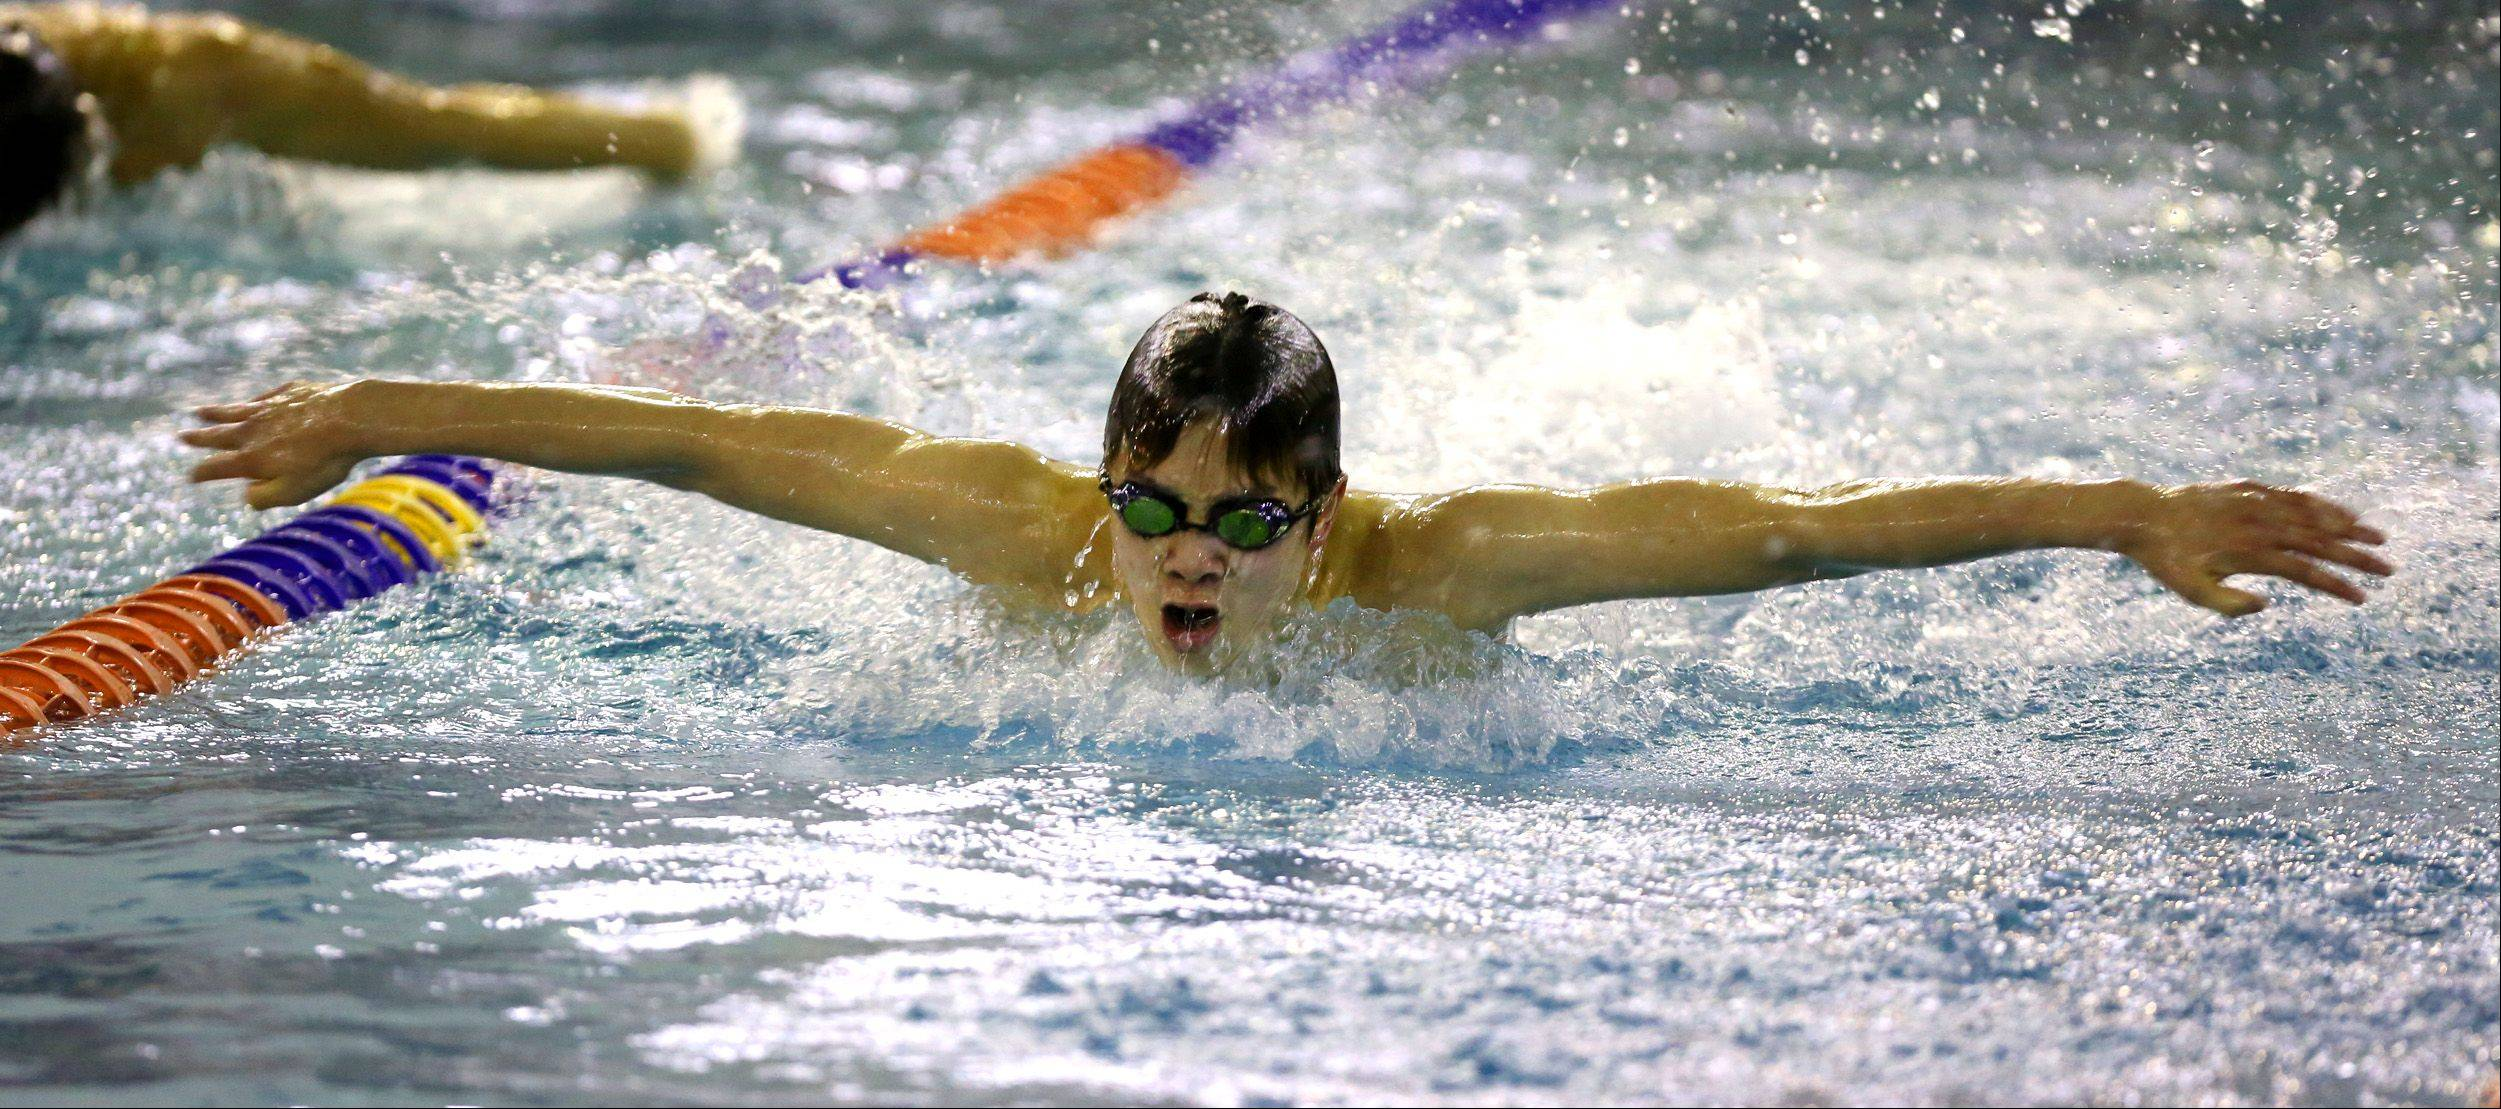 Daniel White/dwhite@dailyherald.comNaperville North's Jeff Leu swims the 100 yard butterfly race during the Boys DVC swim meet at Naperville North.